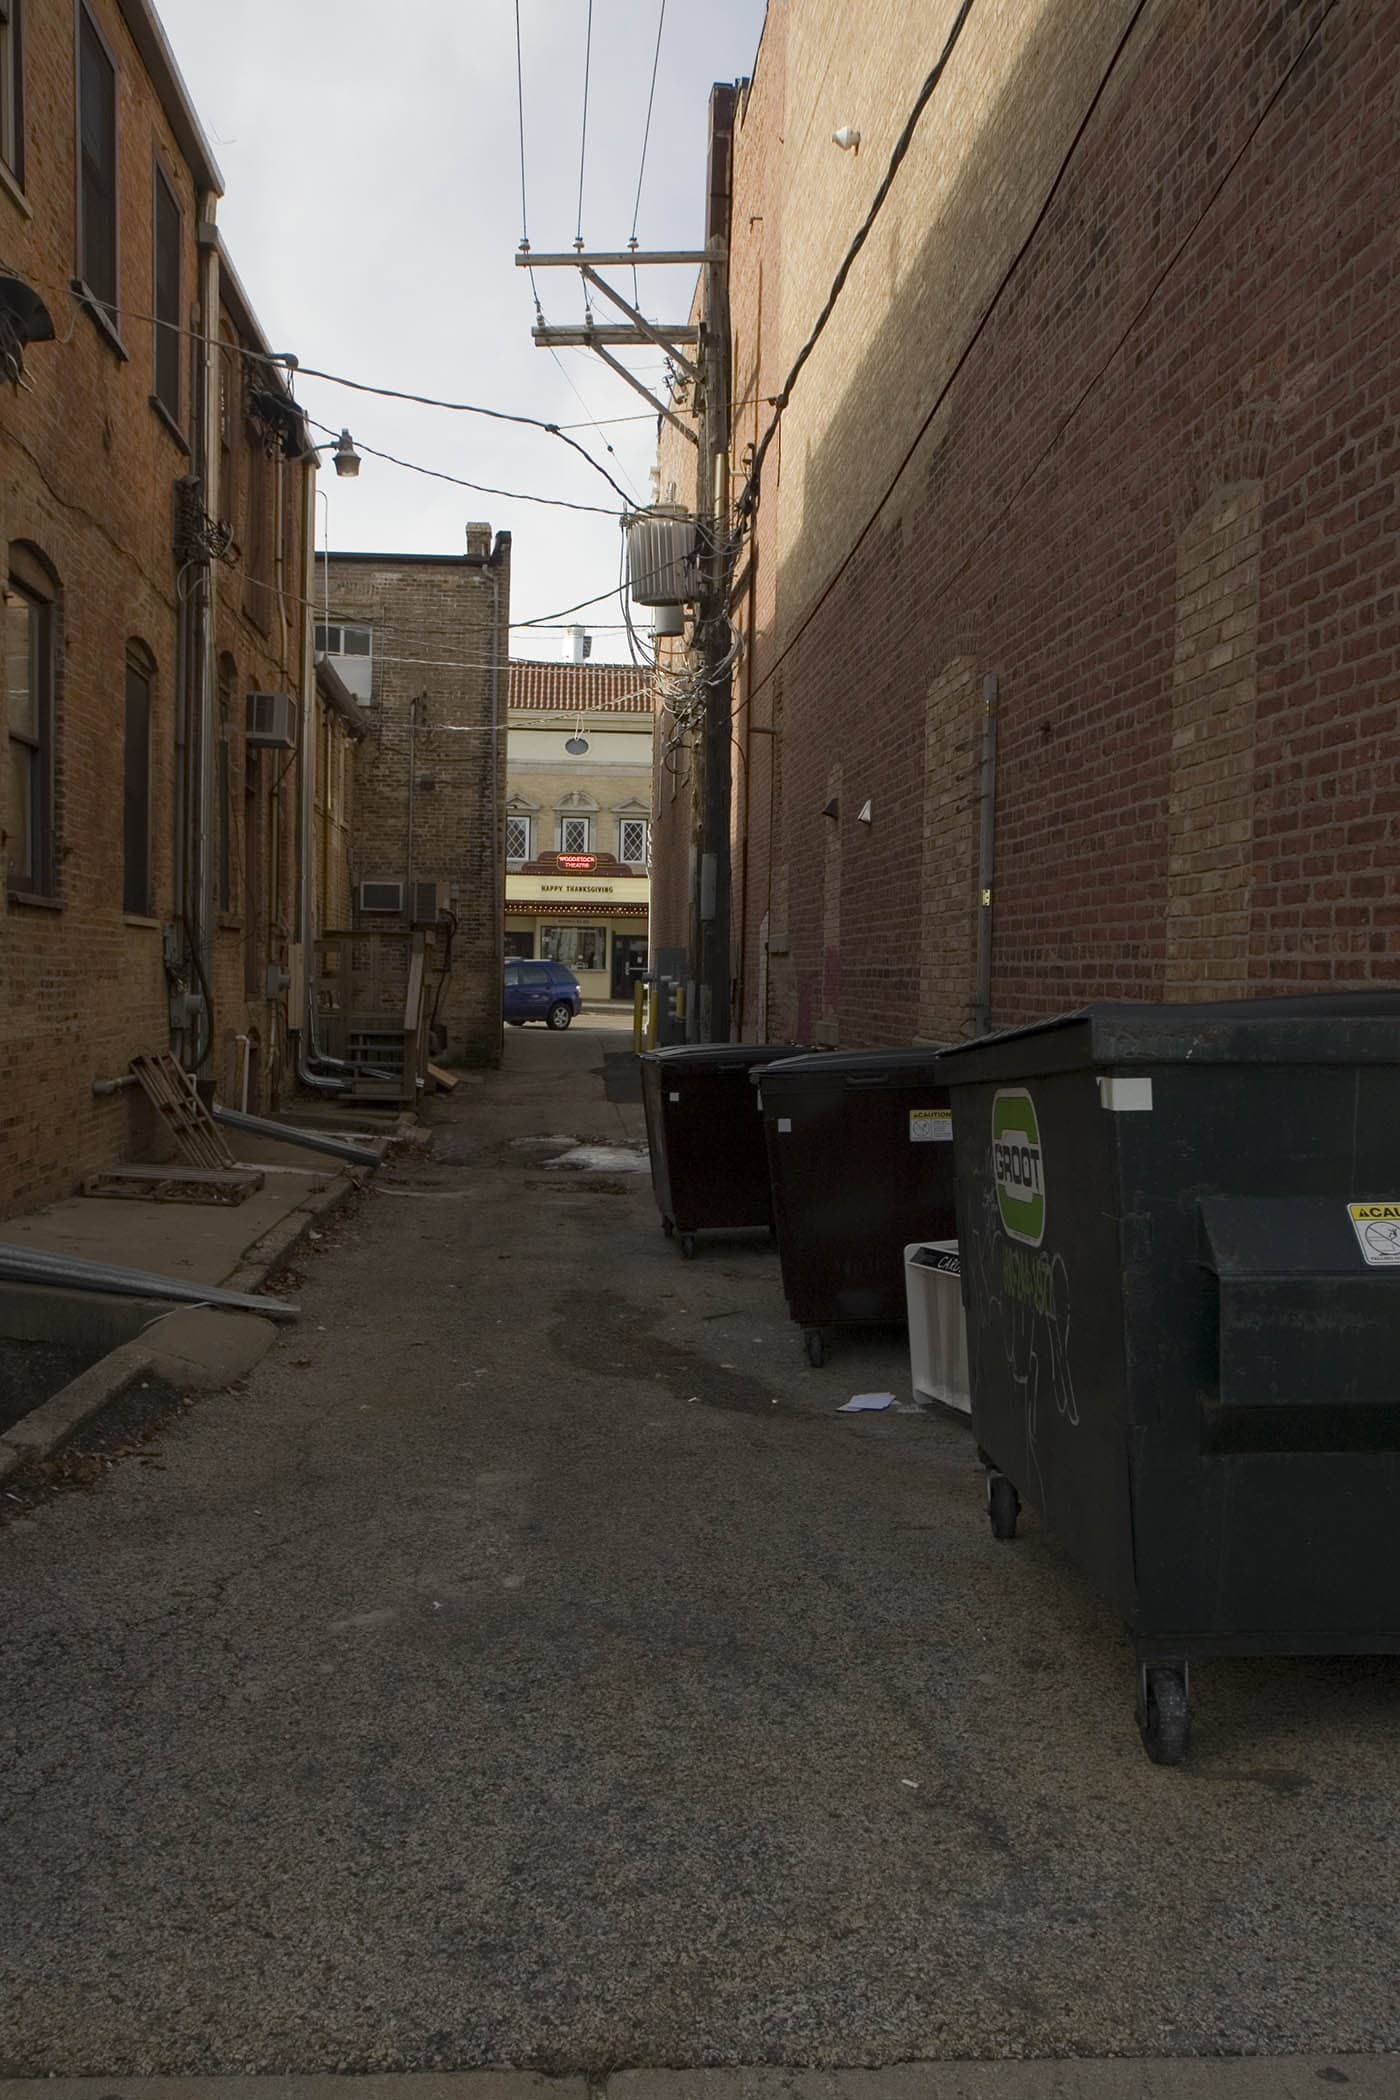 Alley where Phil finds the old man dead - Groundhog Day Movie Filming Locations in Woodstock, Illinois